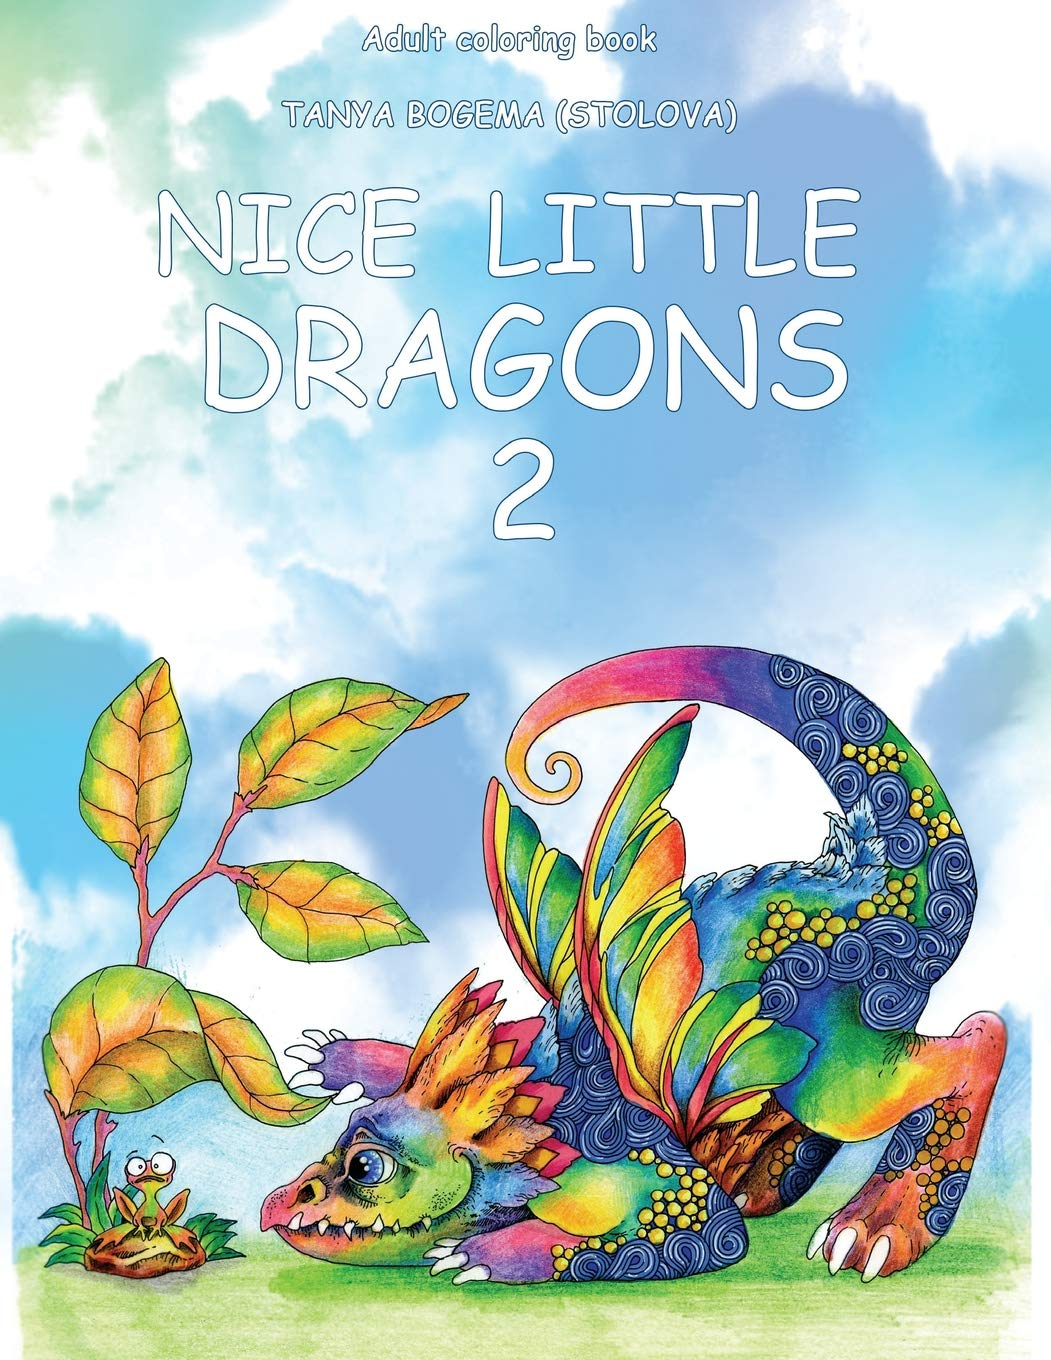 Amazon Com Nice Little Dragons Adult Coloring Book Coloring Pages For Relaxation Stress Relieving Coloring Book Volume 2 9781986141963 Bogema Stolova Tatiana Books